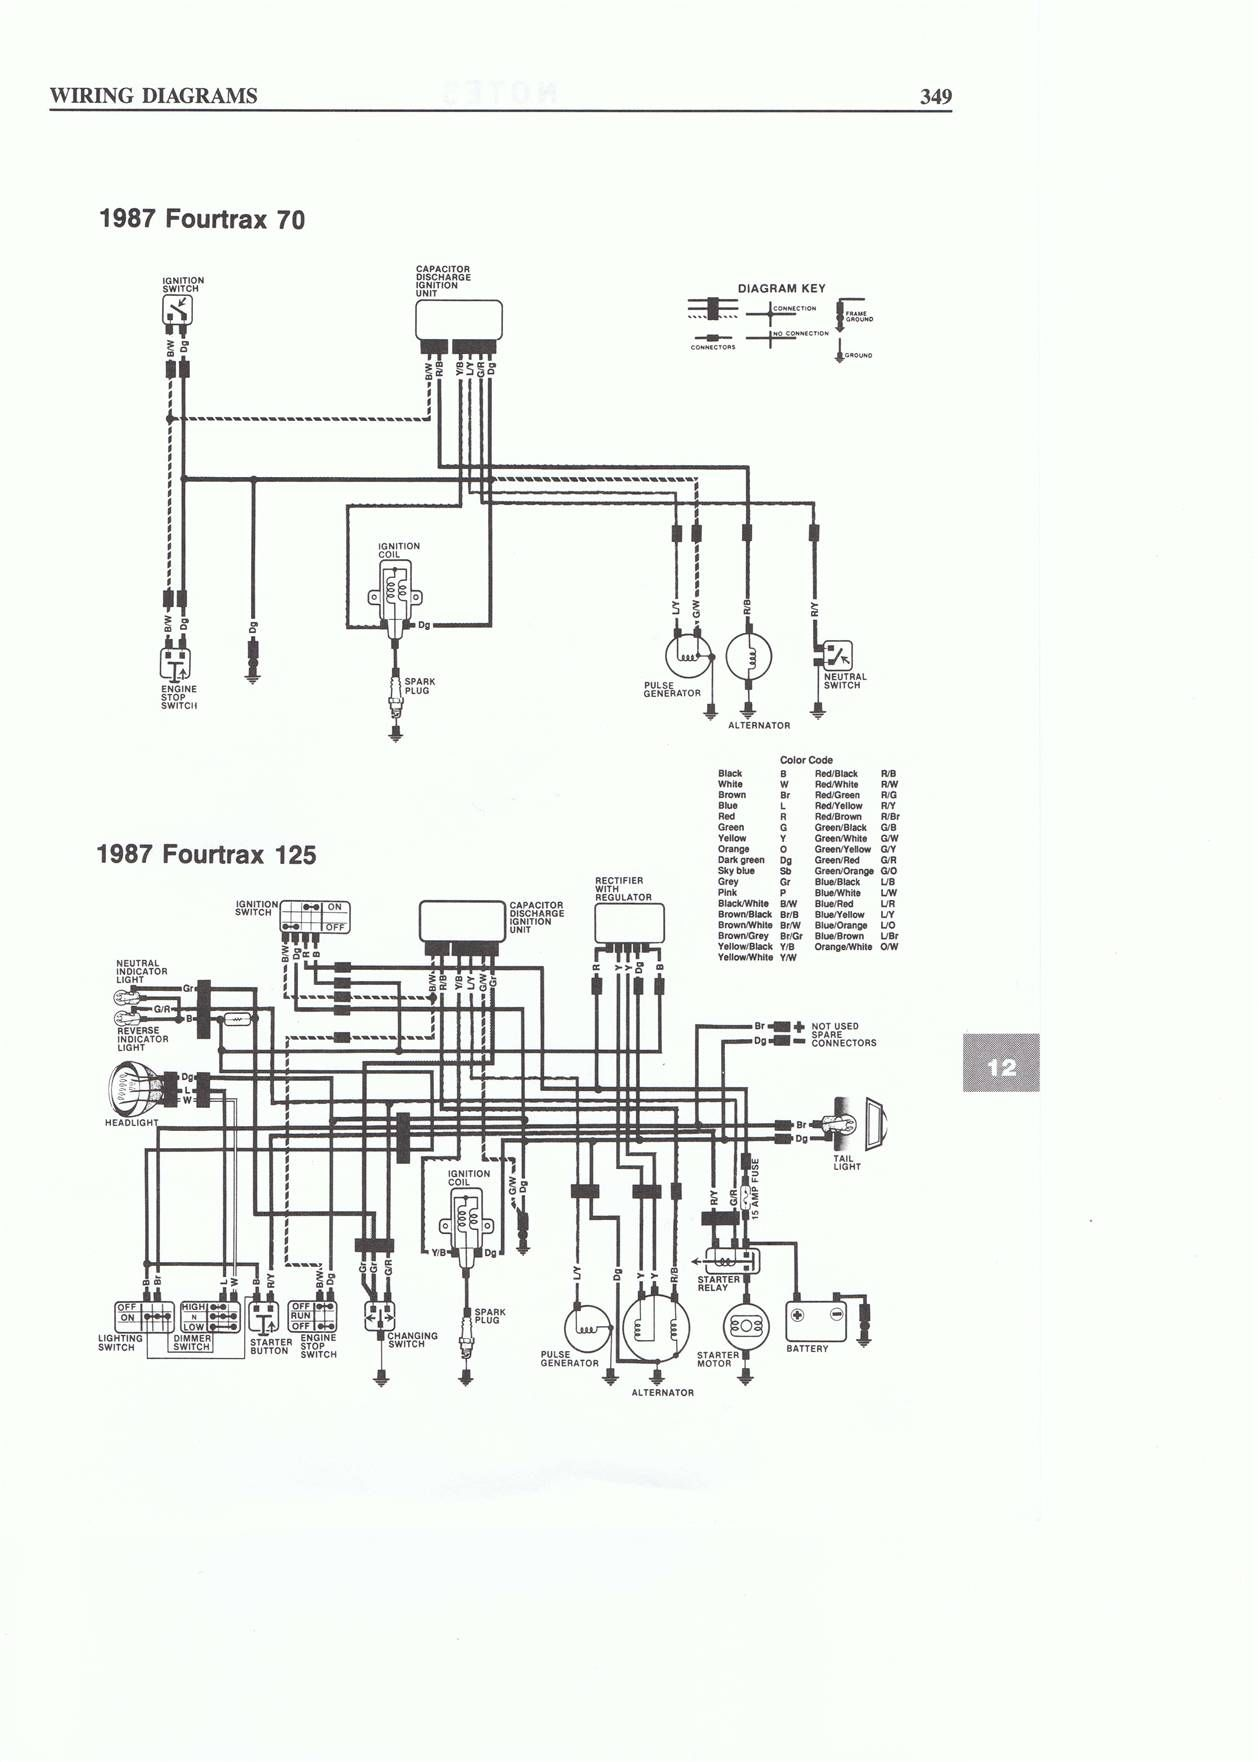 pin by marthie schonstein on diy and crafts diagram engineering wire gy6 150cc engine parts diagram gy6 engine diagram [ 1260 x 1762 Pixel ]